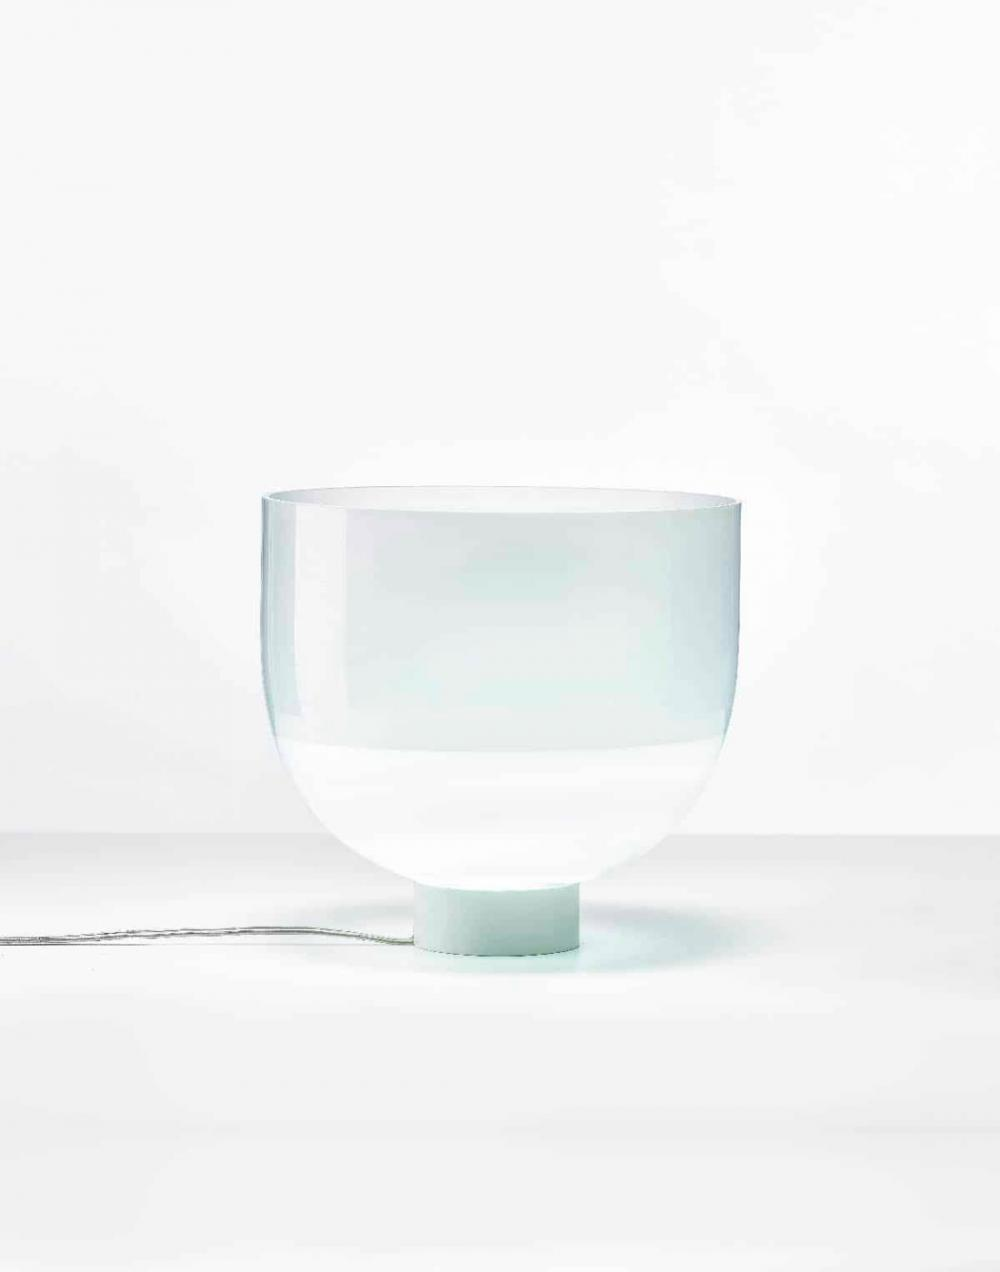 Glowing vase table light